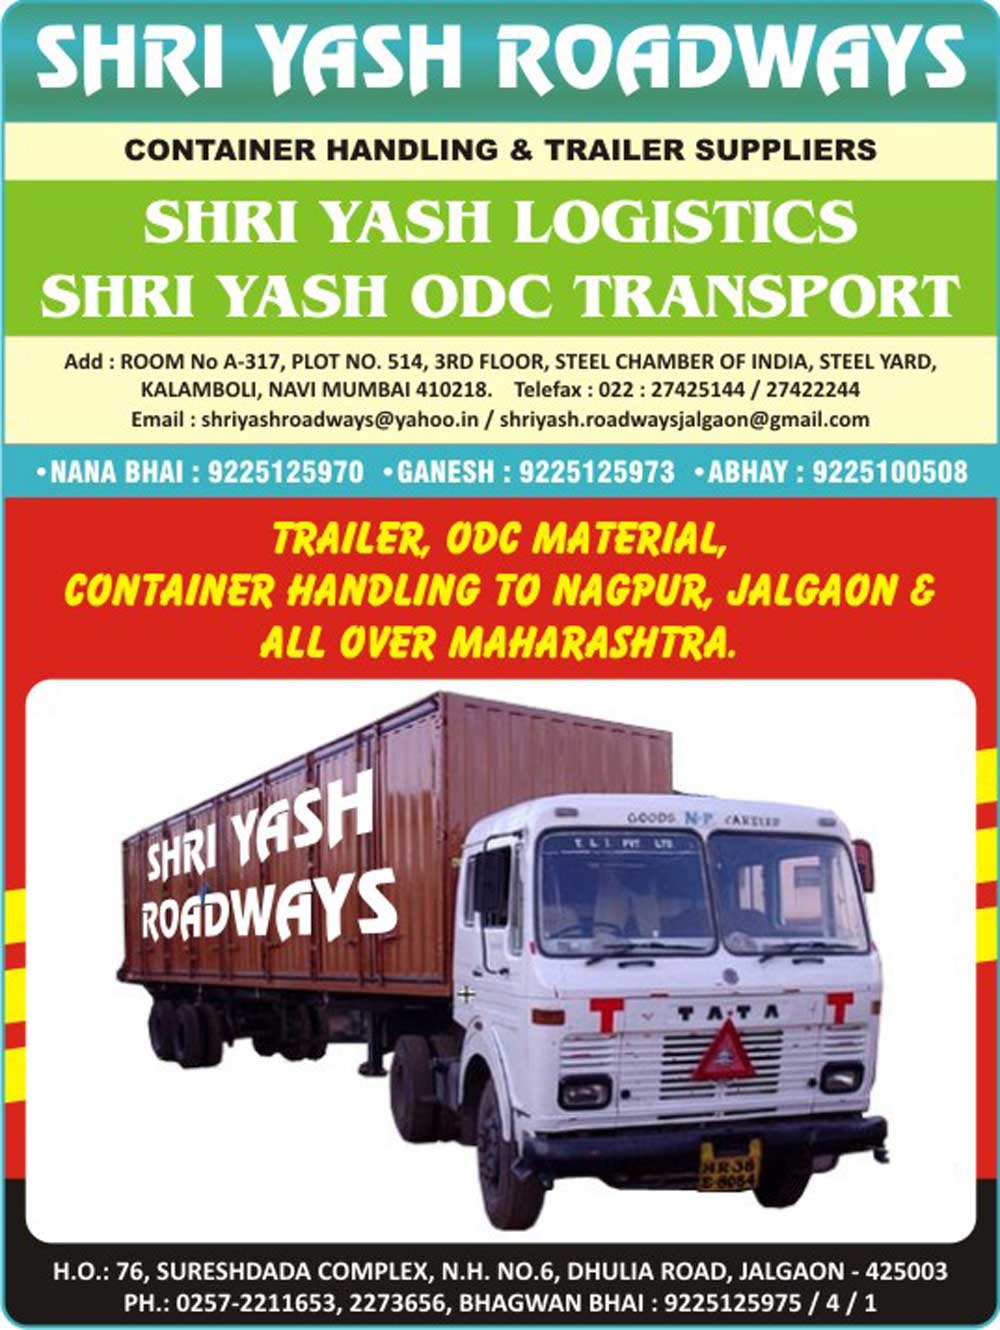 Shri Yash Roadways